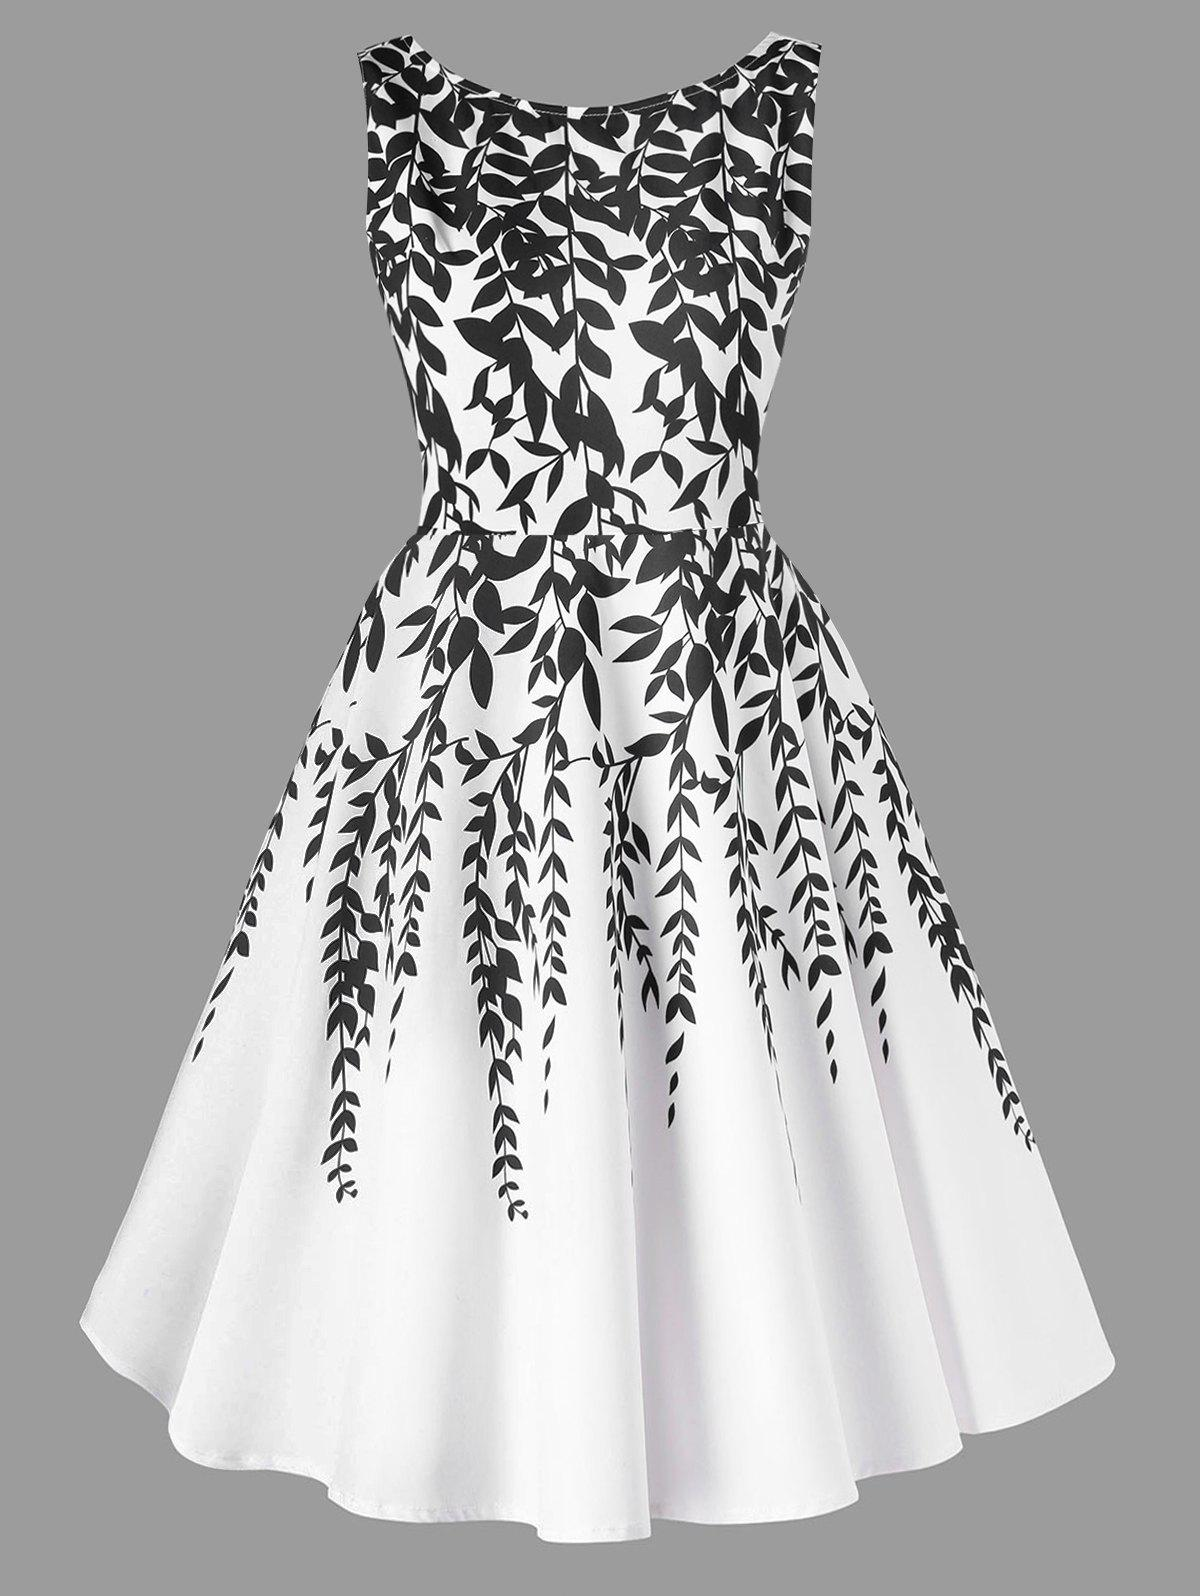 Salix Leaf Printed Sleeveless Flare Dress - WHITE XL